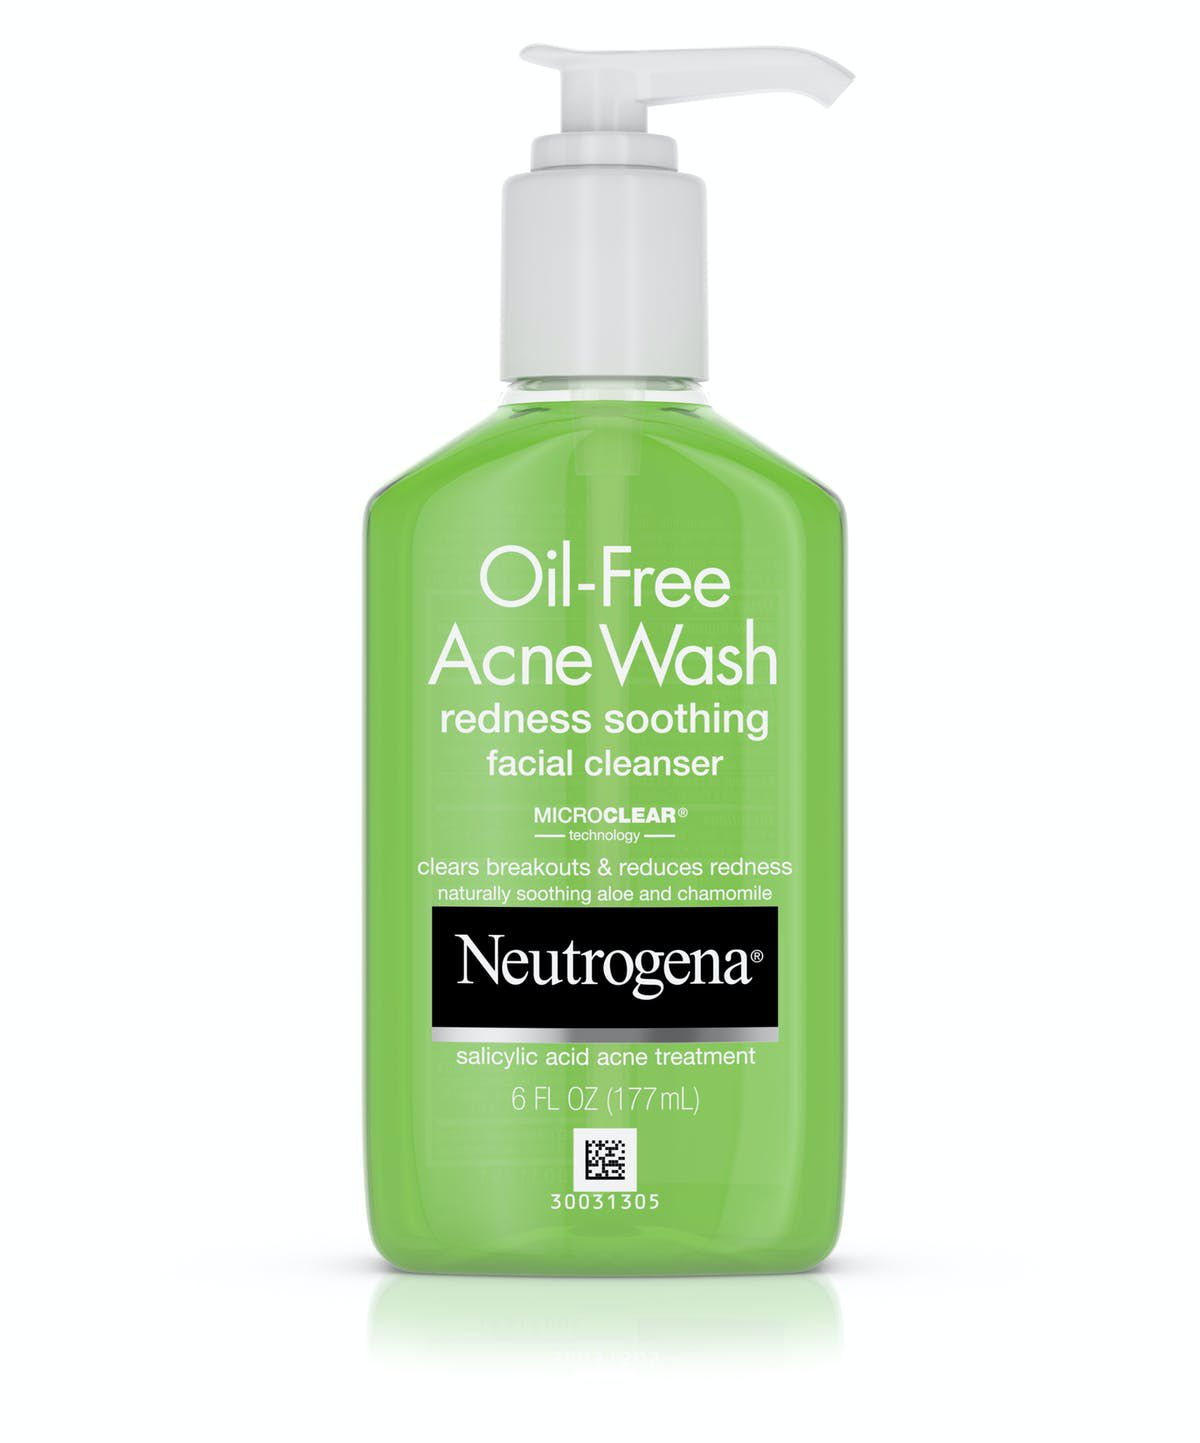 Neutrogena Oil-Free Acne Wash Redness Soothing Cleanser